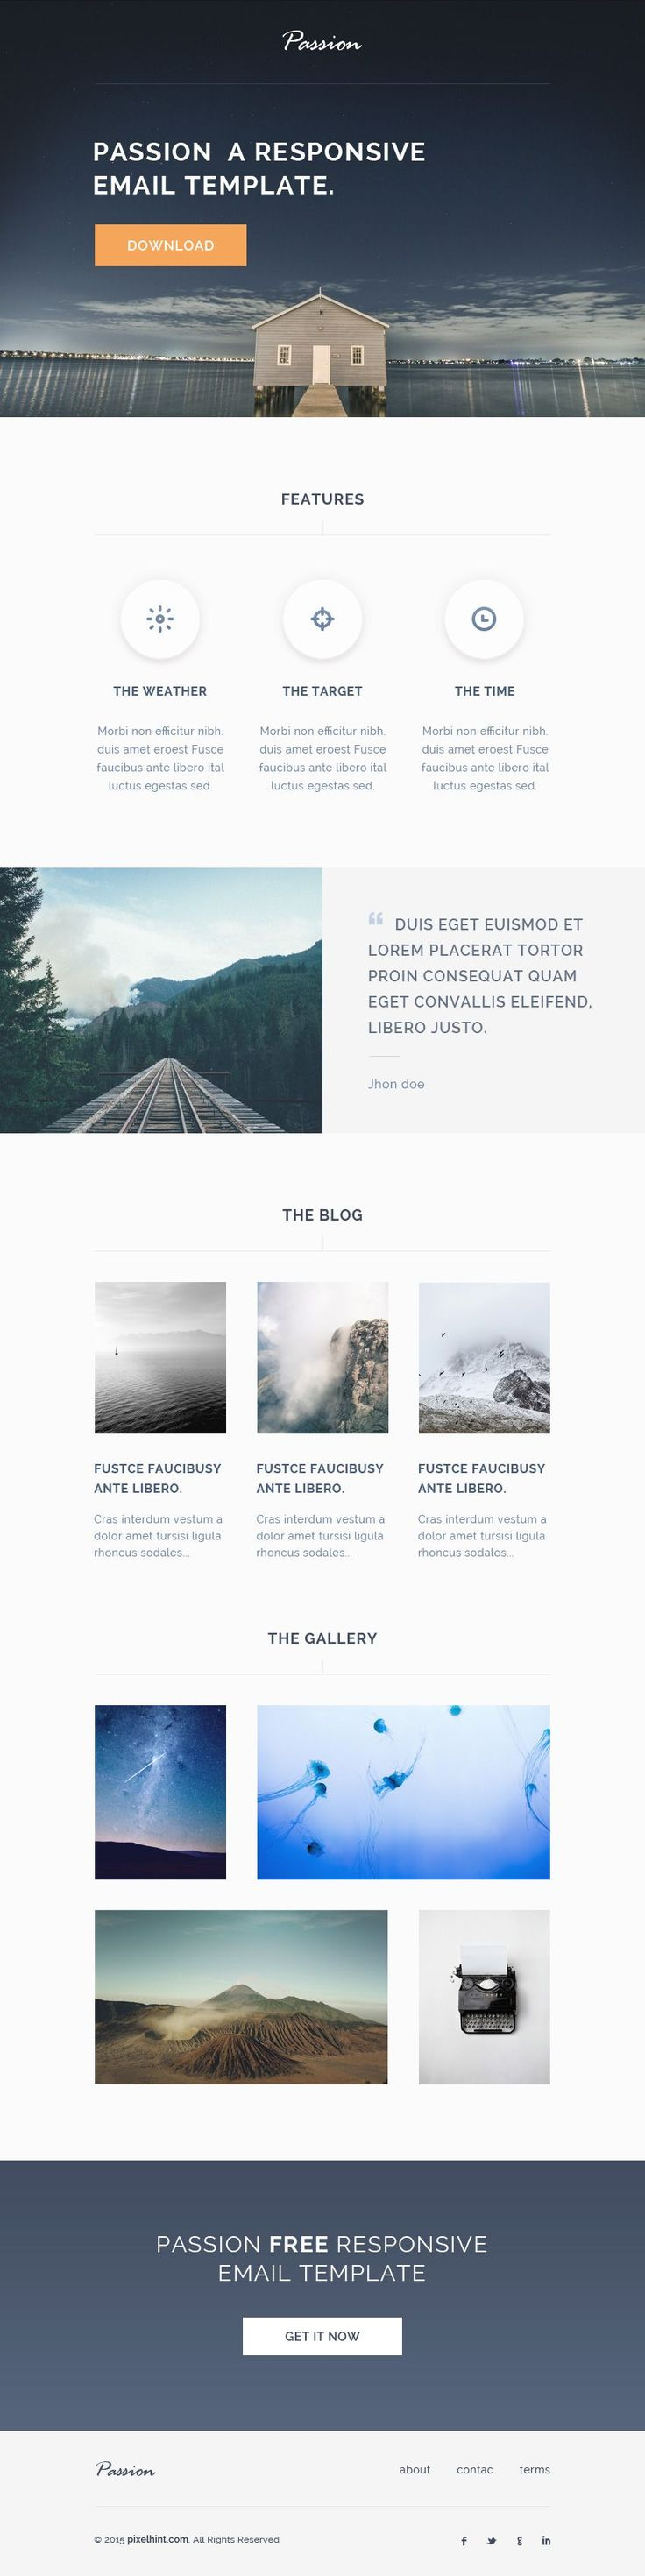 The 25 best free responsive email templates ideas on pinterest passion free html responsive email template pronofoot35fo Choice Image